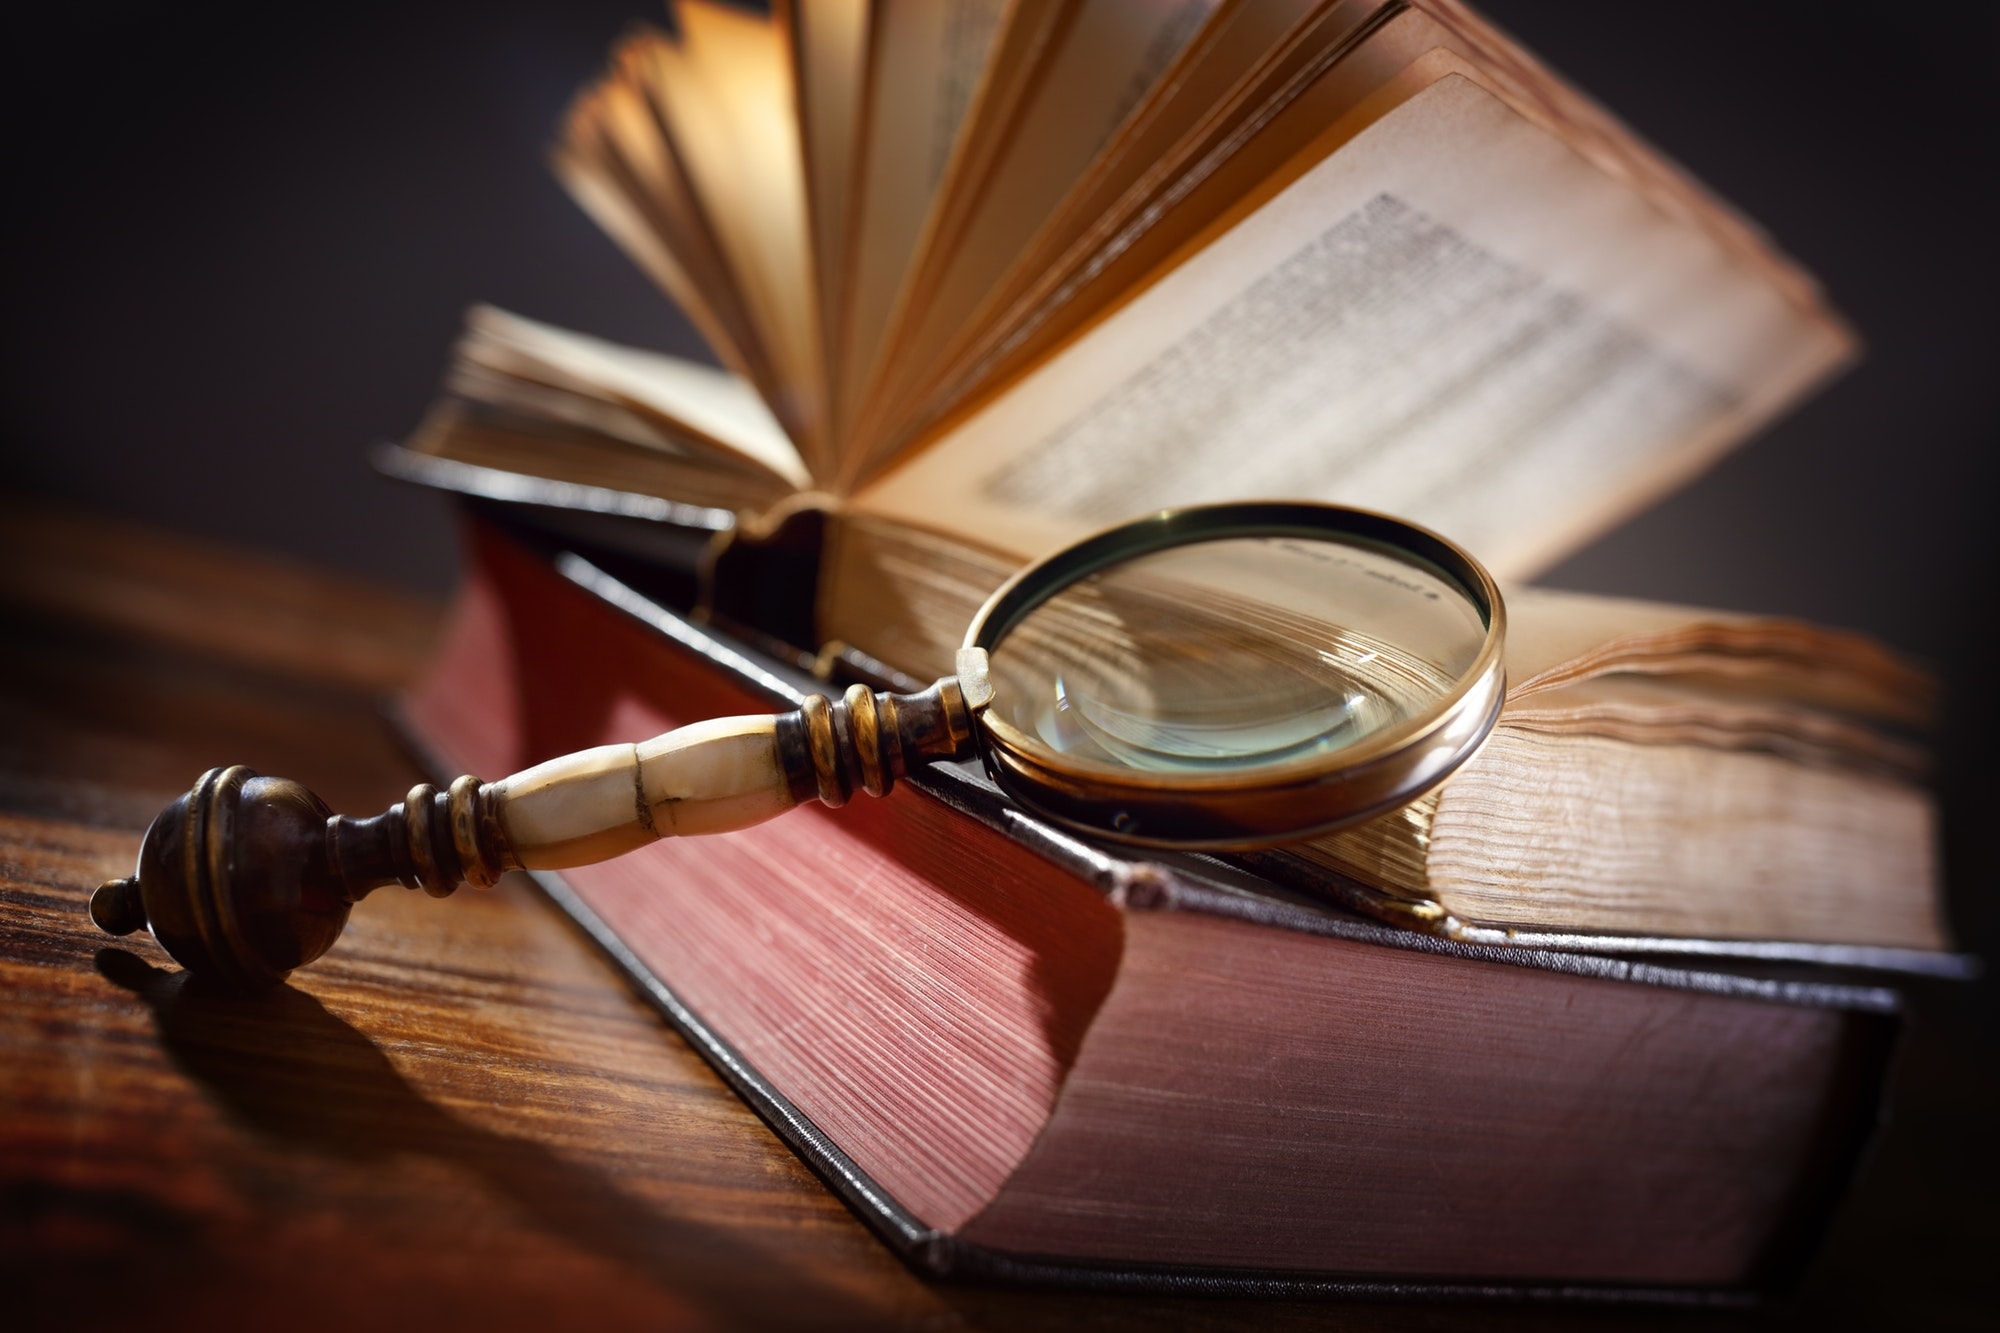 Old book and magnifying glass fla contract law legal assistance balance boca raton fl